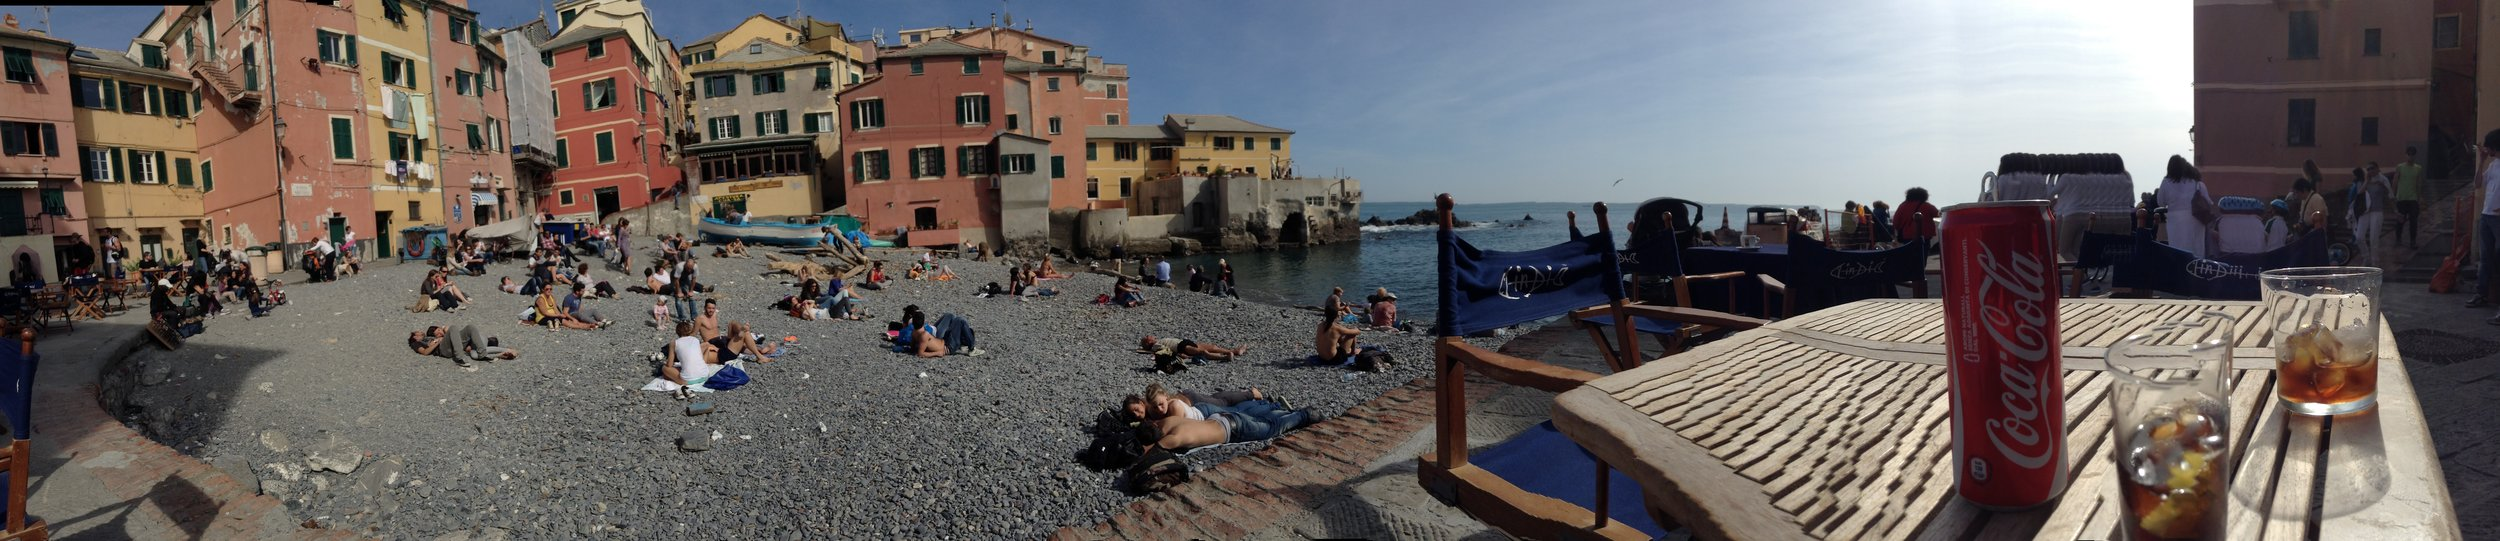 Boccadasse, on the eastern side of Genoa